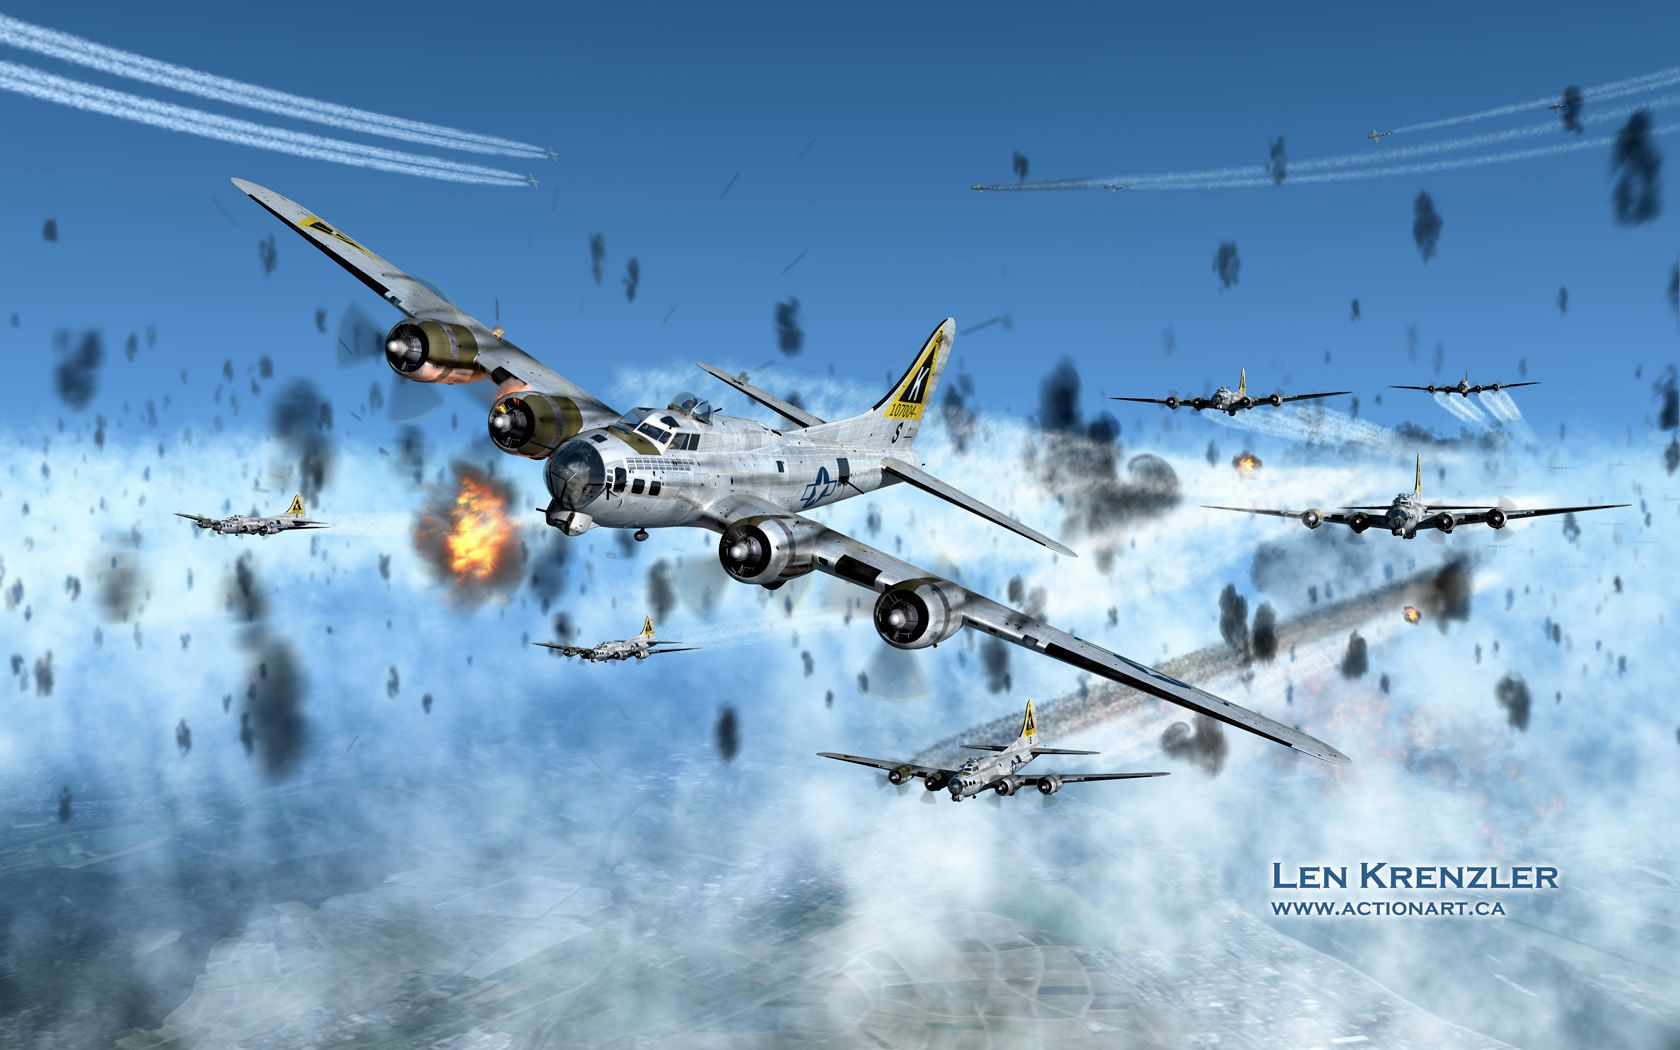 """Wing and a Prayer"" Artwork by Len Krenzler. Ever wonder what it was like to fly into a flak barrage? This artist's rendition of an air raid over Frankfurt, Germany shows just how heavy the flak barrage could be."